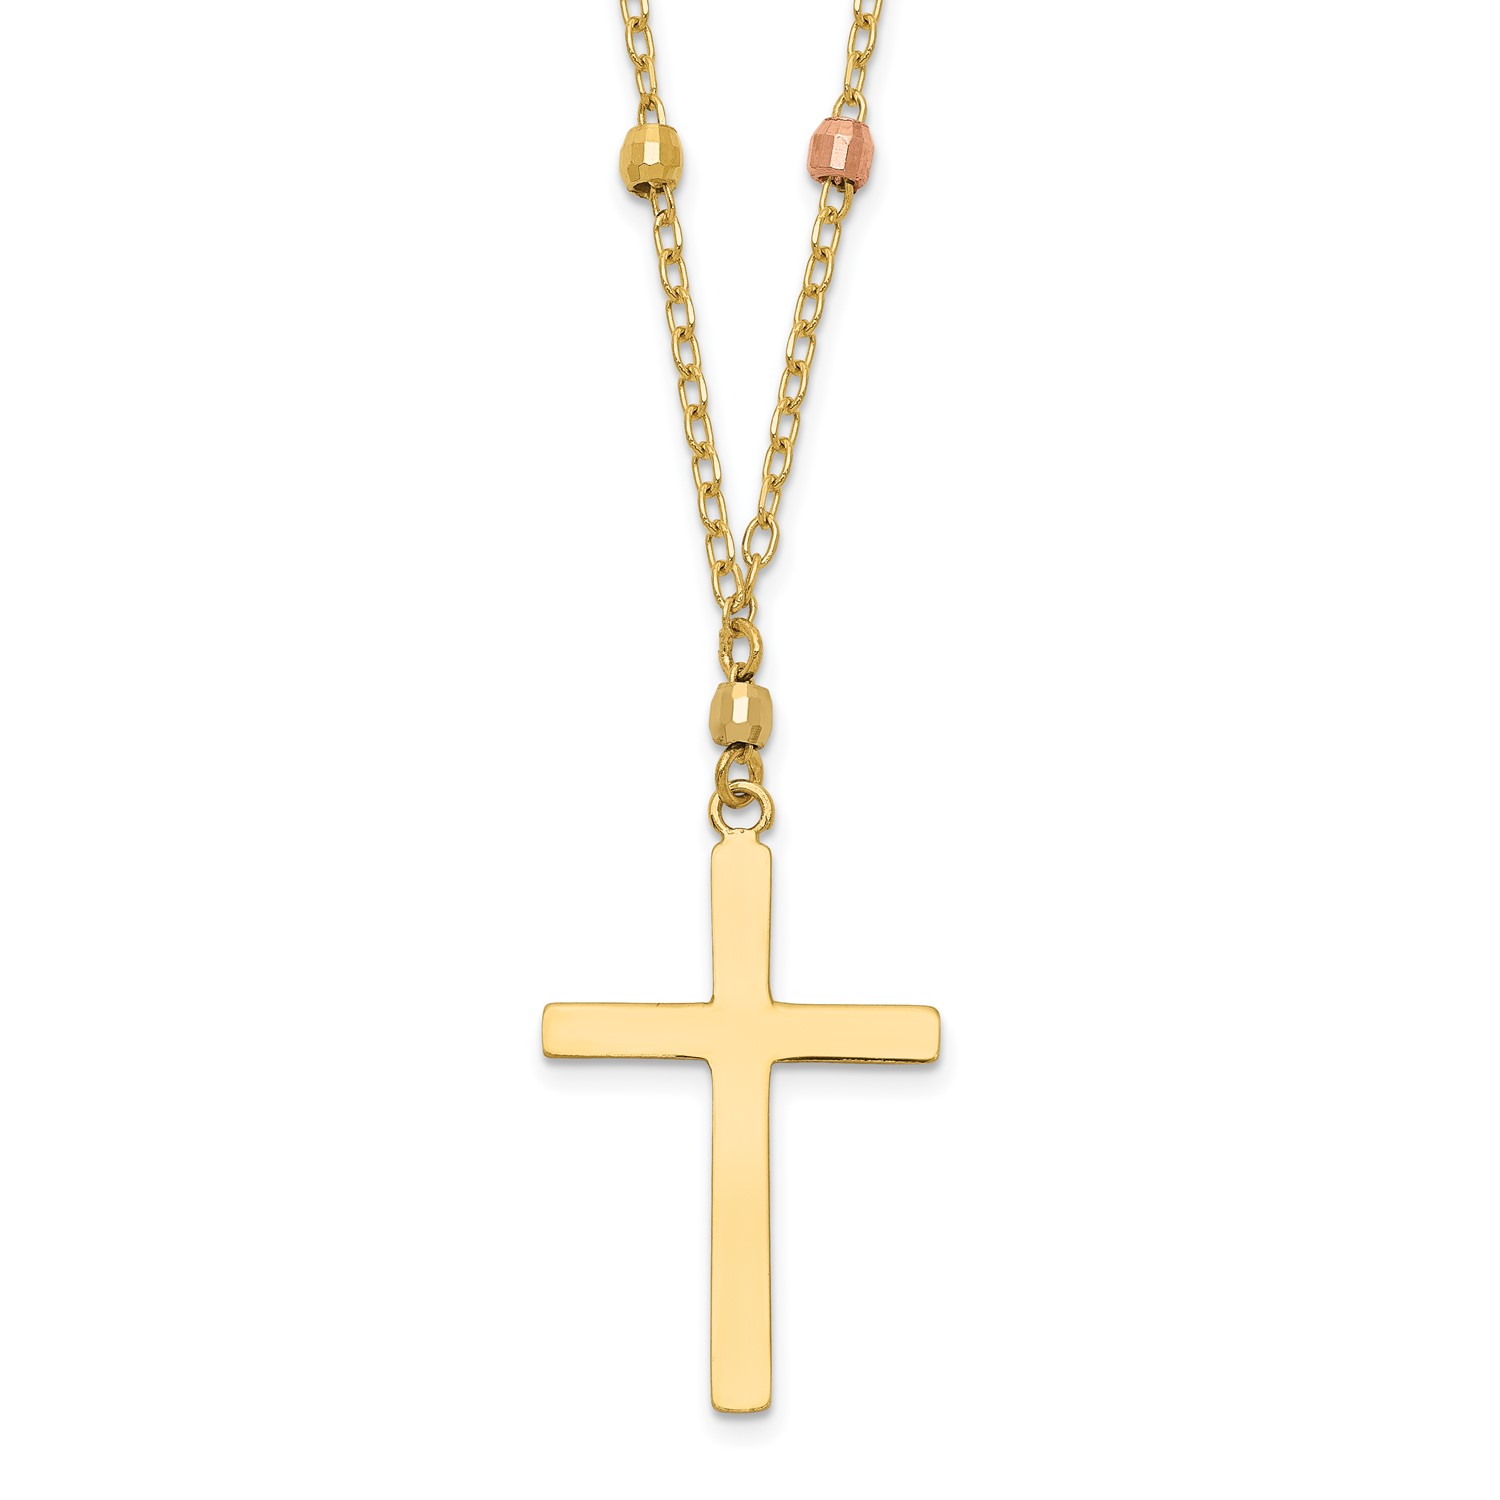 14K Tri Colored Gold 18in Diamond Cut Beaded Cross Necklace